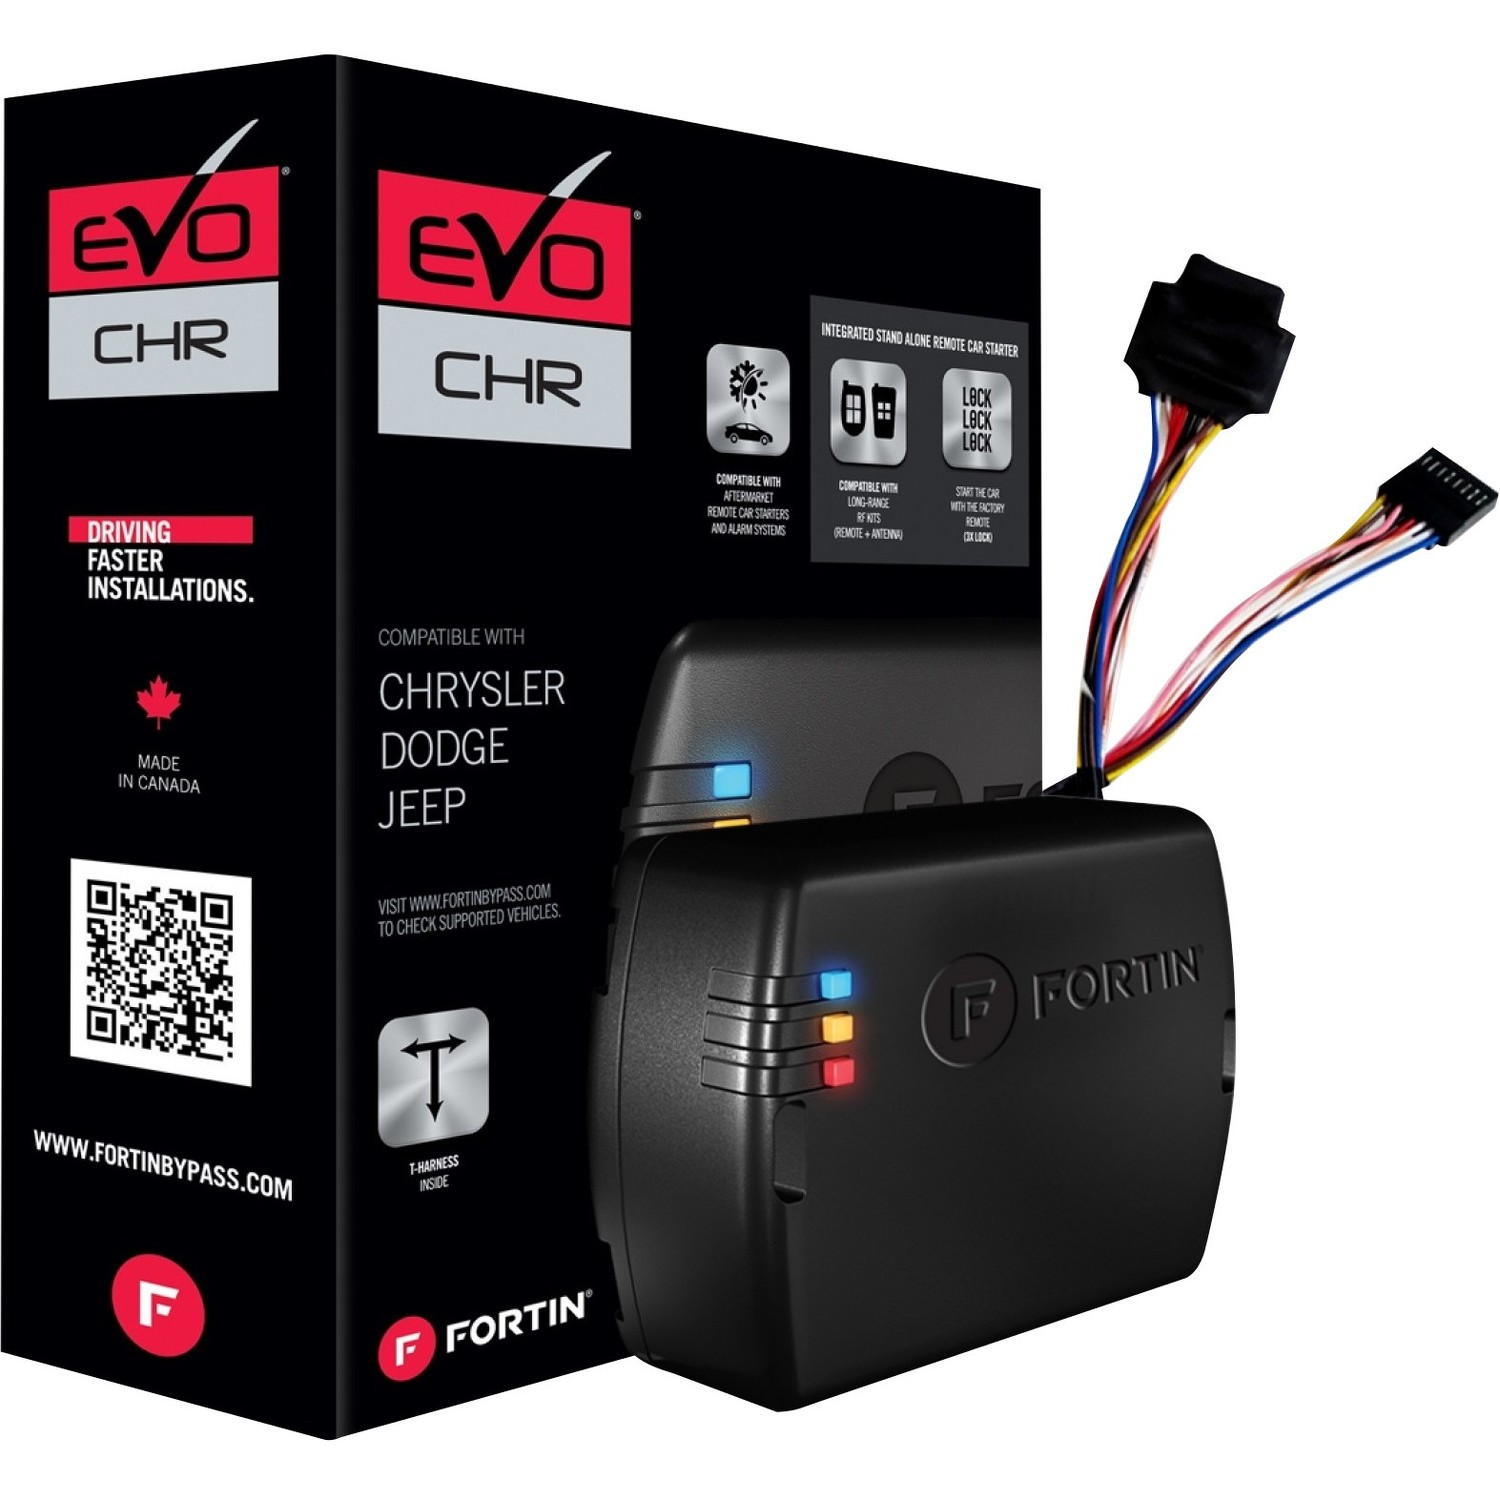 Fortin EVO-CHR.T5 Preloaded Module and T-Harness Combo (Chrysler, Dodge and Jeep 2007 and Up Standard Key Vehicles)